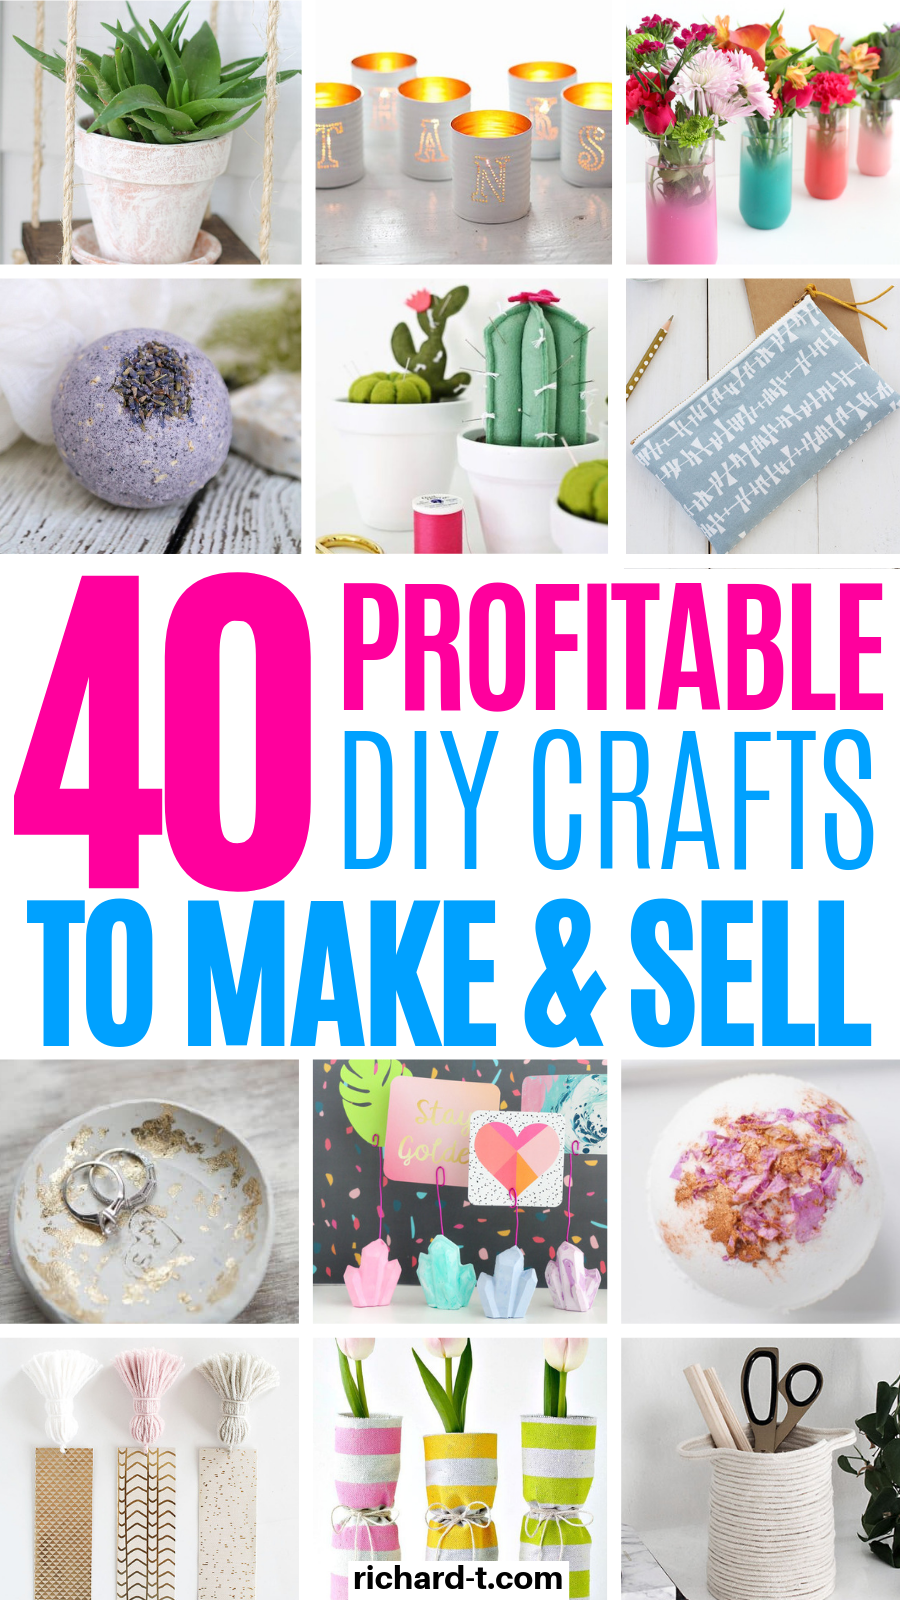 40 DIY Crafts To Make & Sell For Money